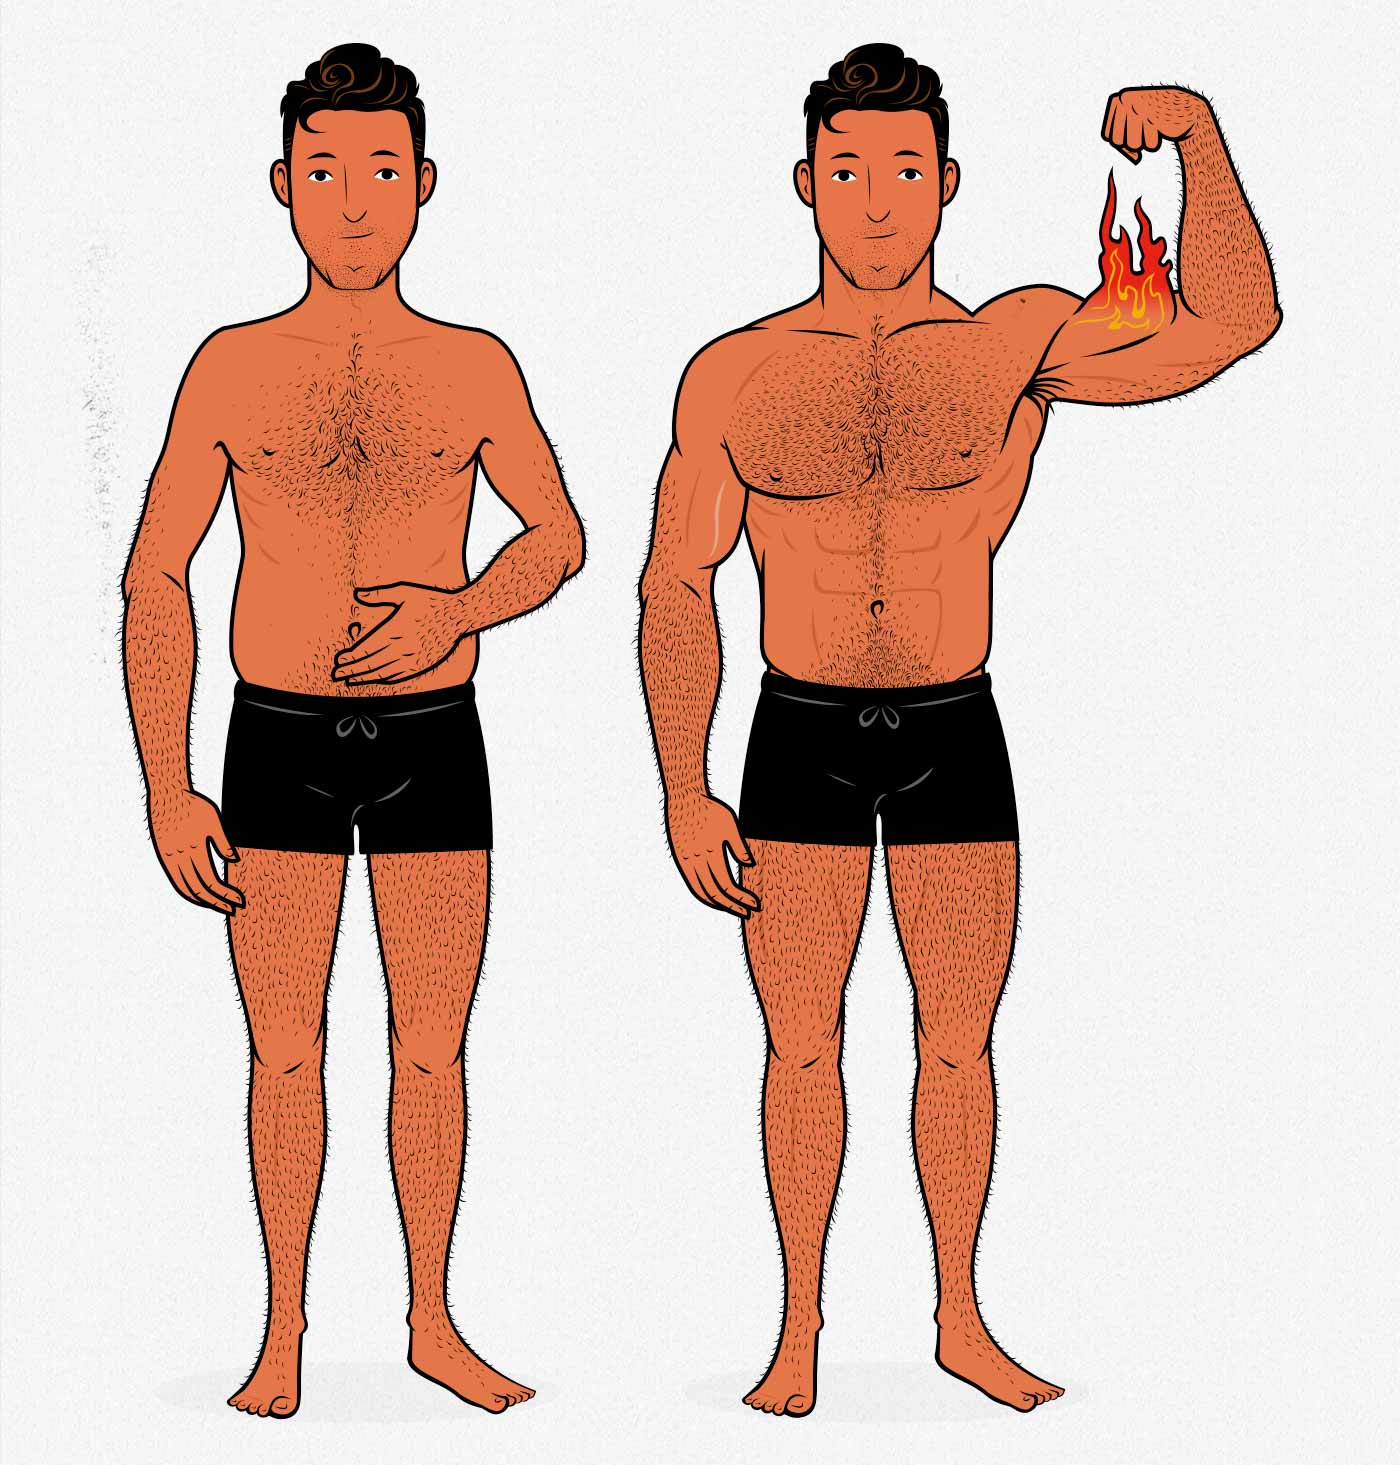 Illustration of a skinny guy bulking up and building muscle.